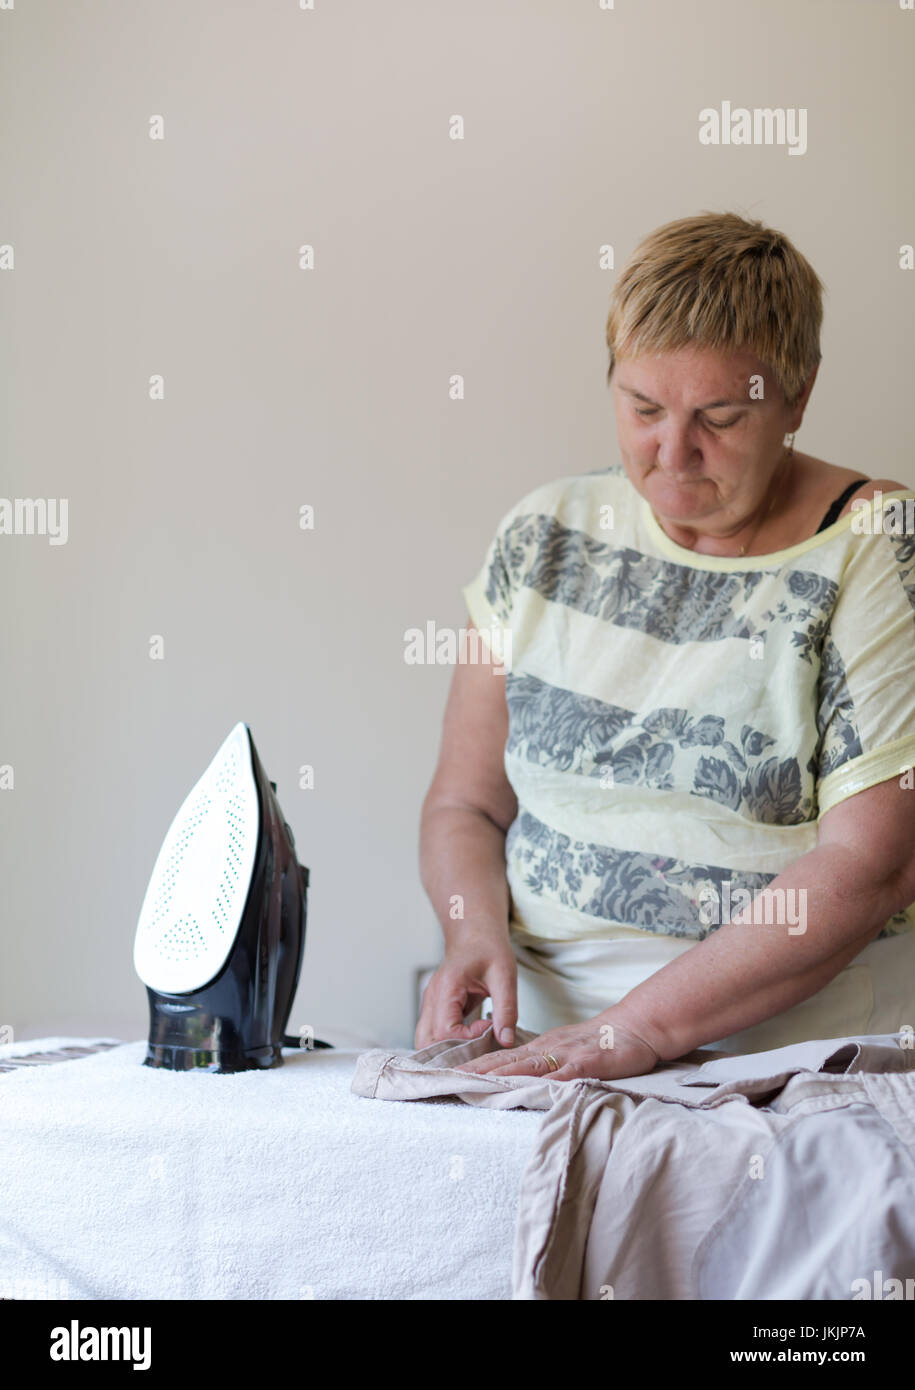 Senior woman ironing washed cloths in light room. Vertical orientantion with selective focus on working hands with - Stock Image